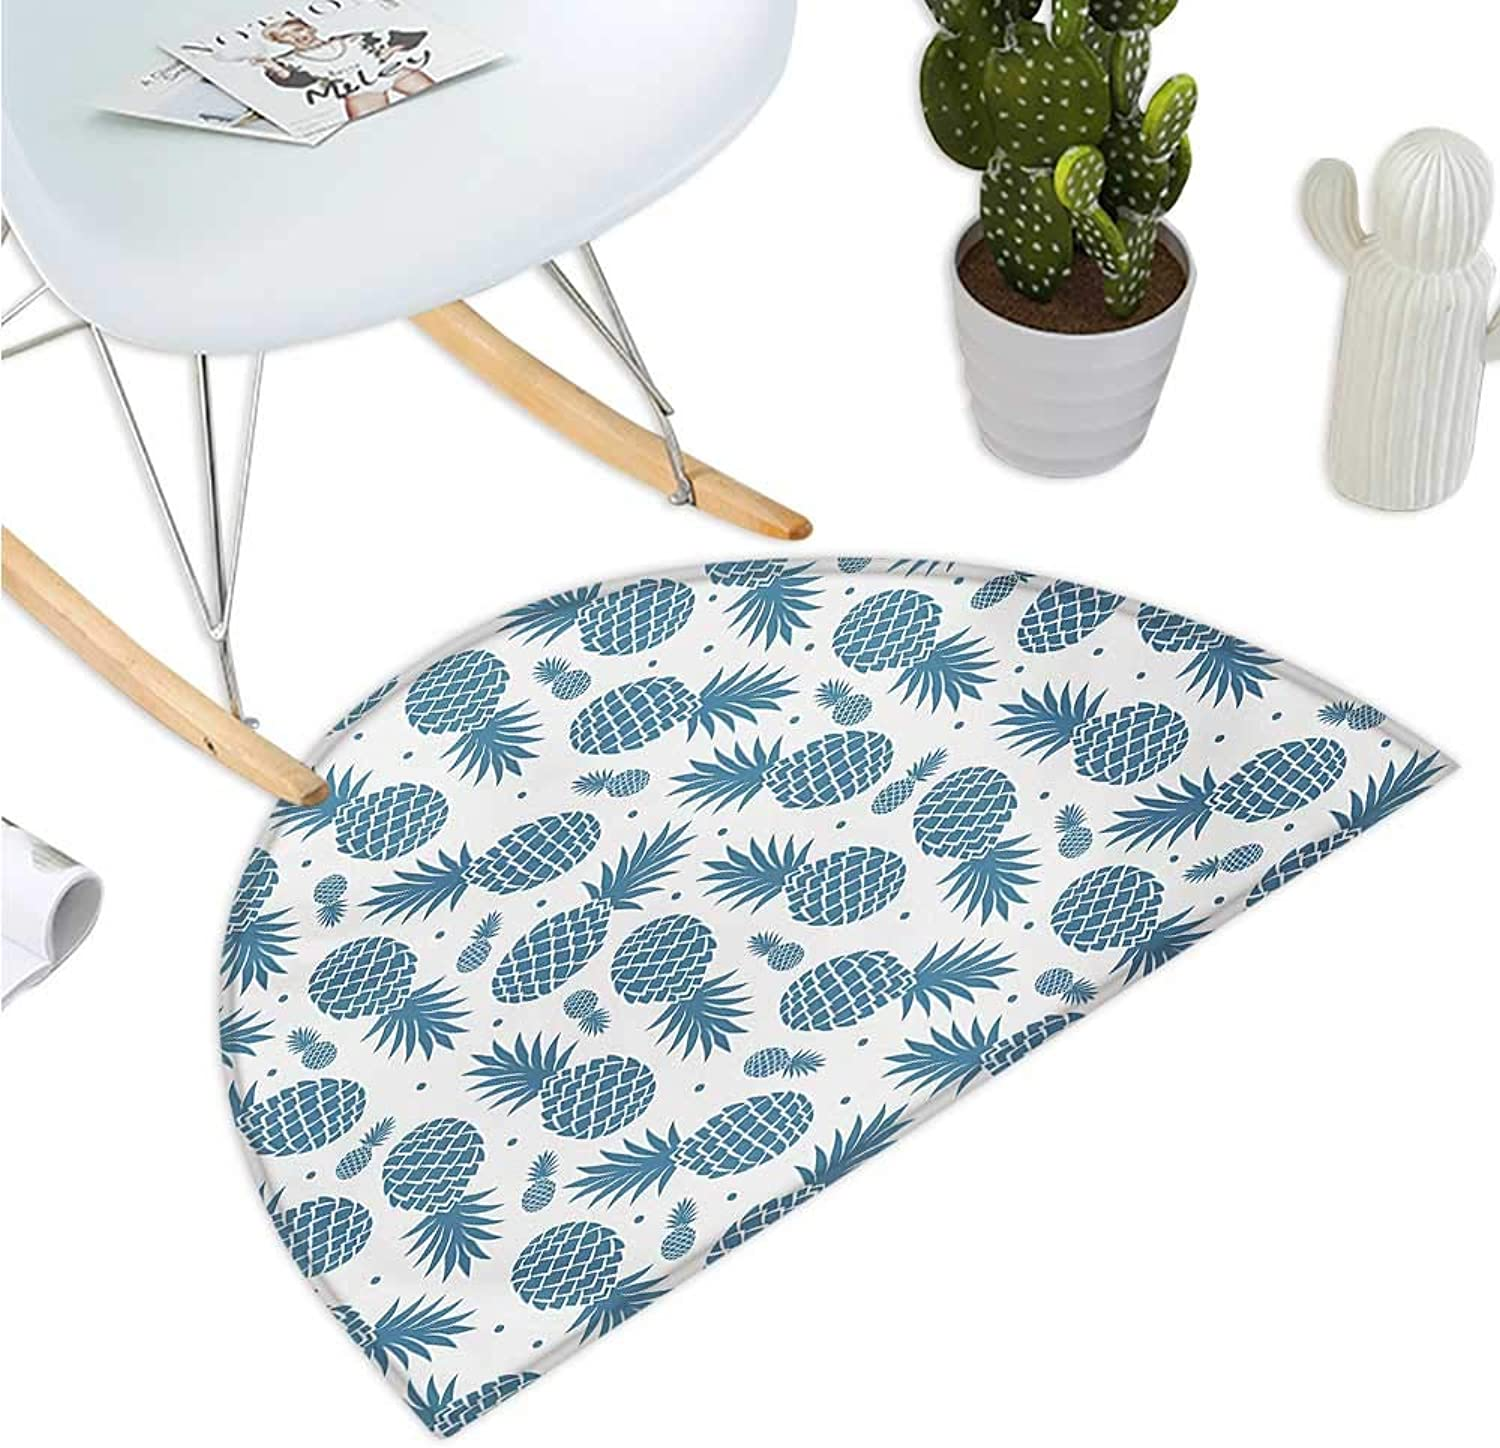 Pineapple Semicircular Cushion Island Themed Minimalistic Multi-Sized Tropic Fruity Pineapple Printed Vintage Entry Door Mat H 43.3  xD 64.9  bluee White